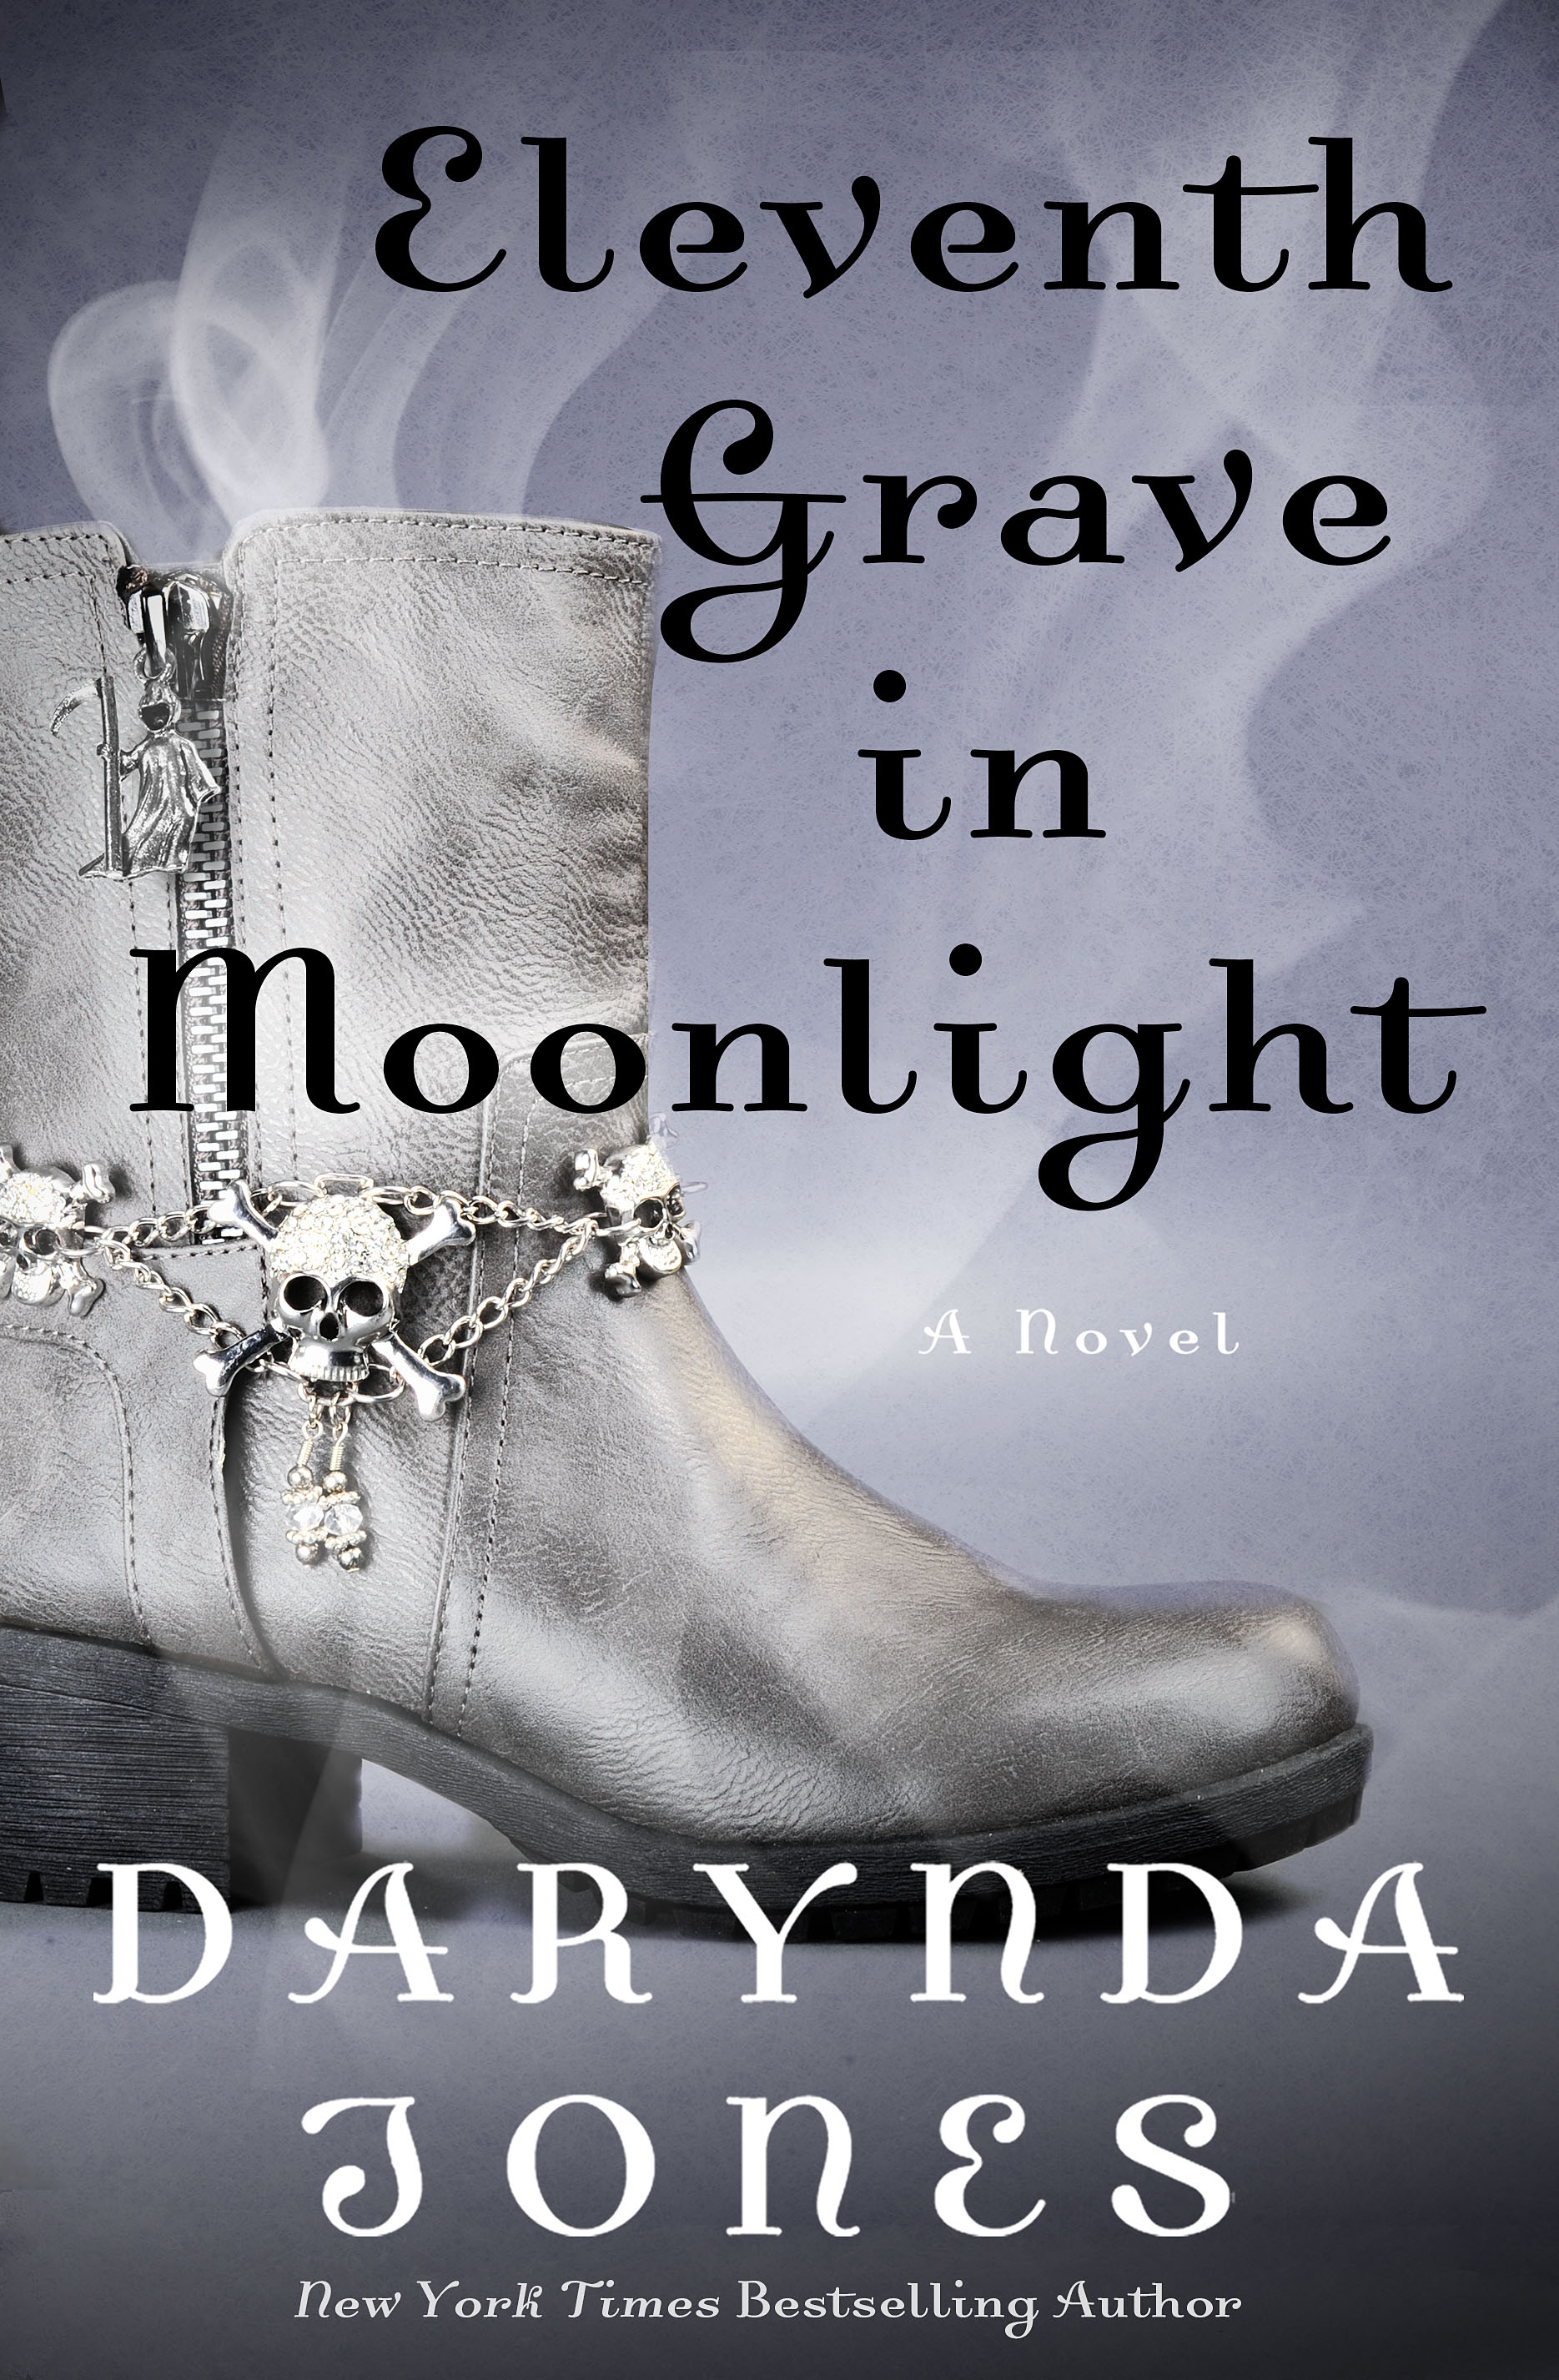 Eleventh Grave in Moonlight [electronic resource] : A Novel